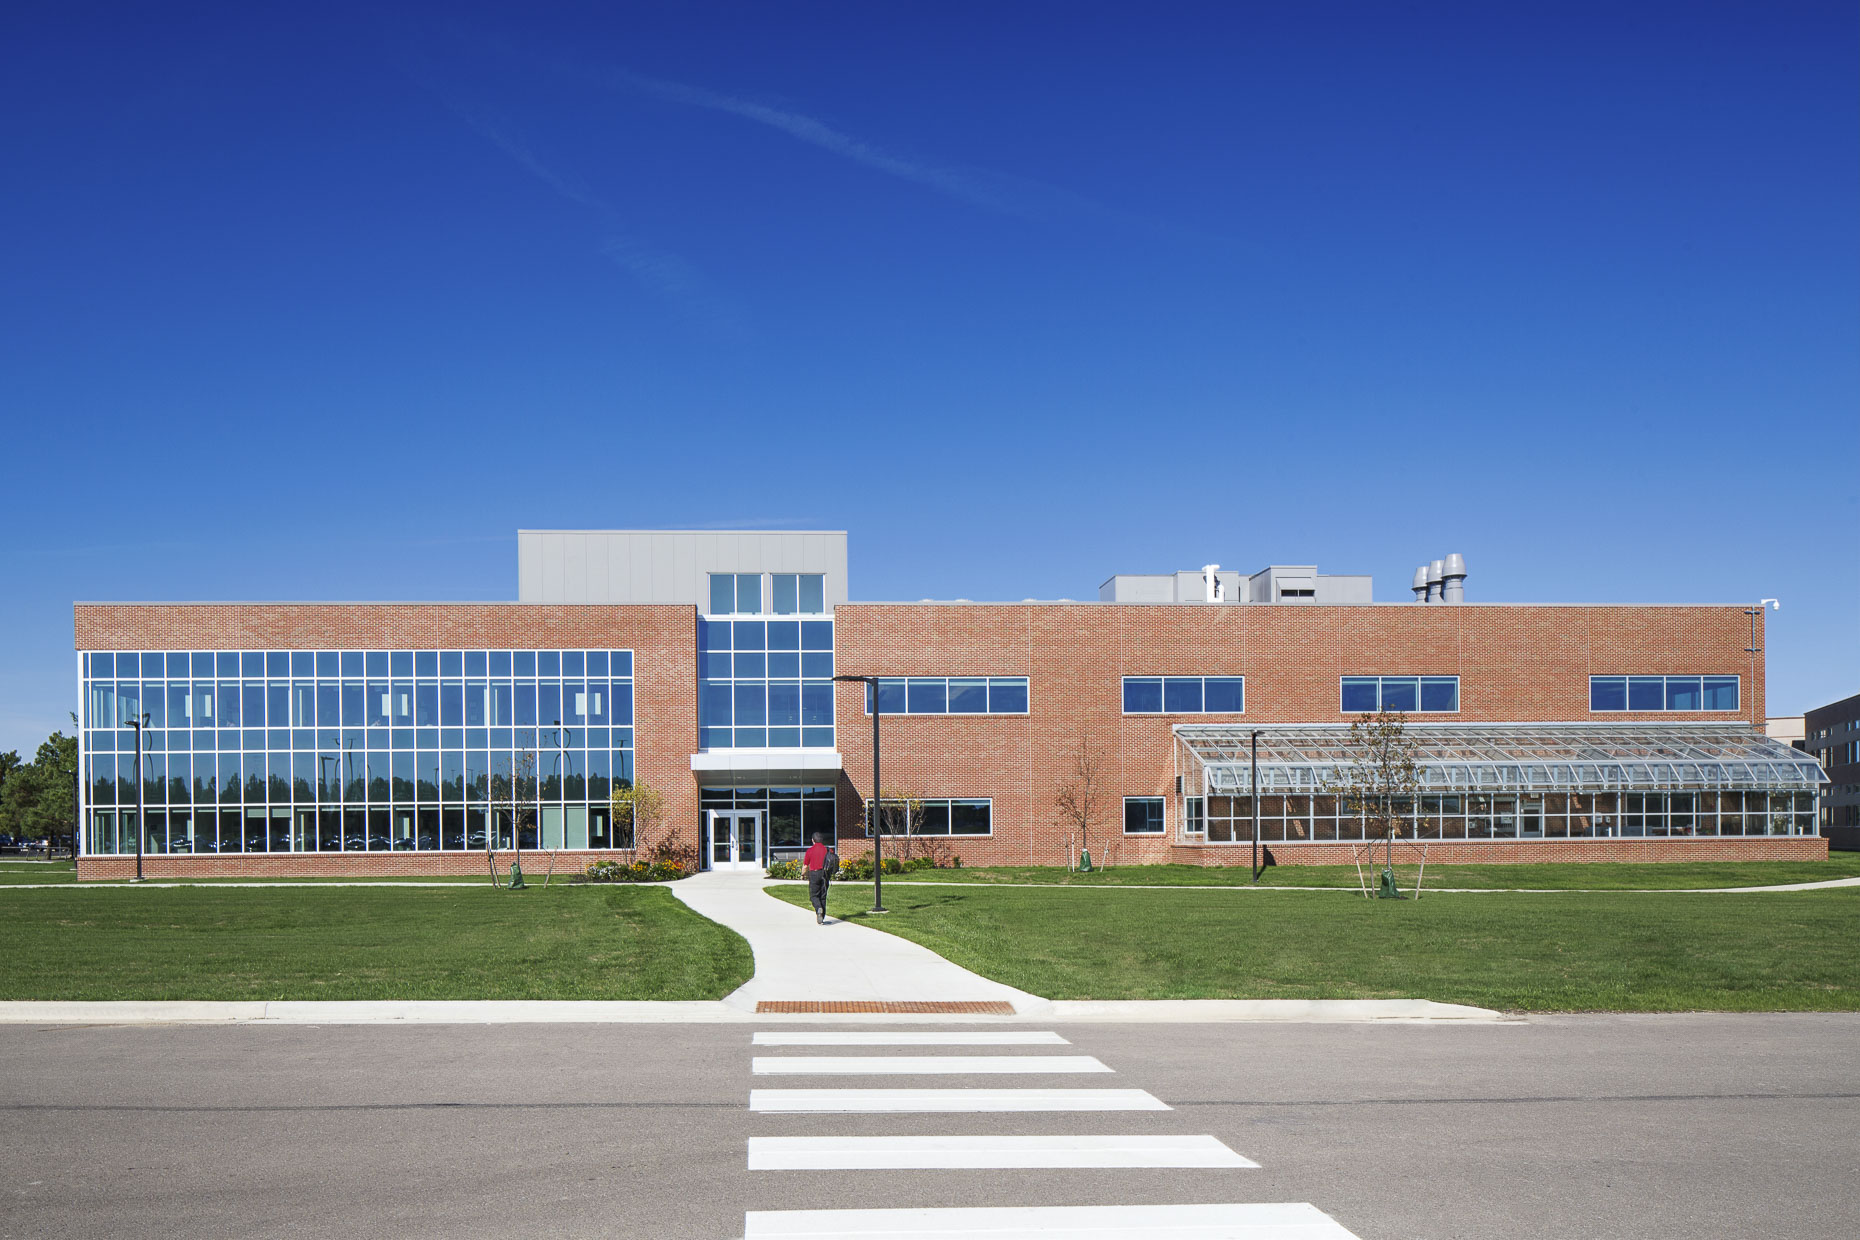 OSU Marion Science & Engineering Building by Stantec photographed by Lauren K Davis based in Columbus, Ohio